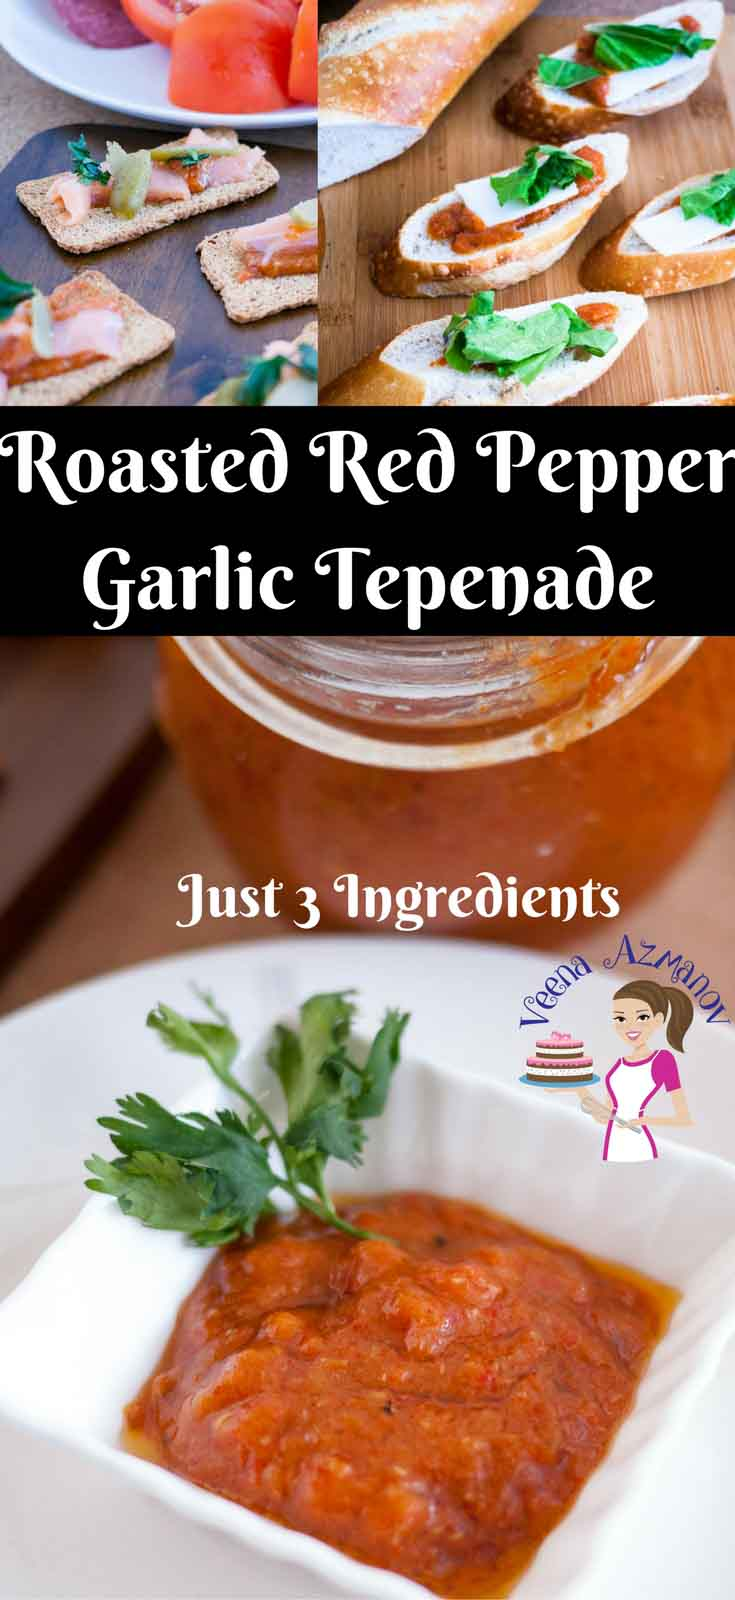 Roasted red peppers tapenade in a jar.